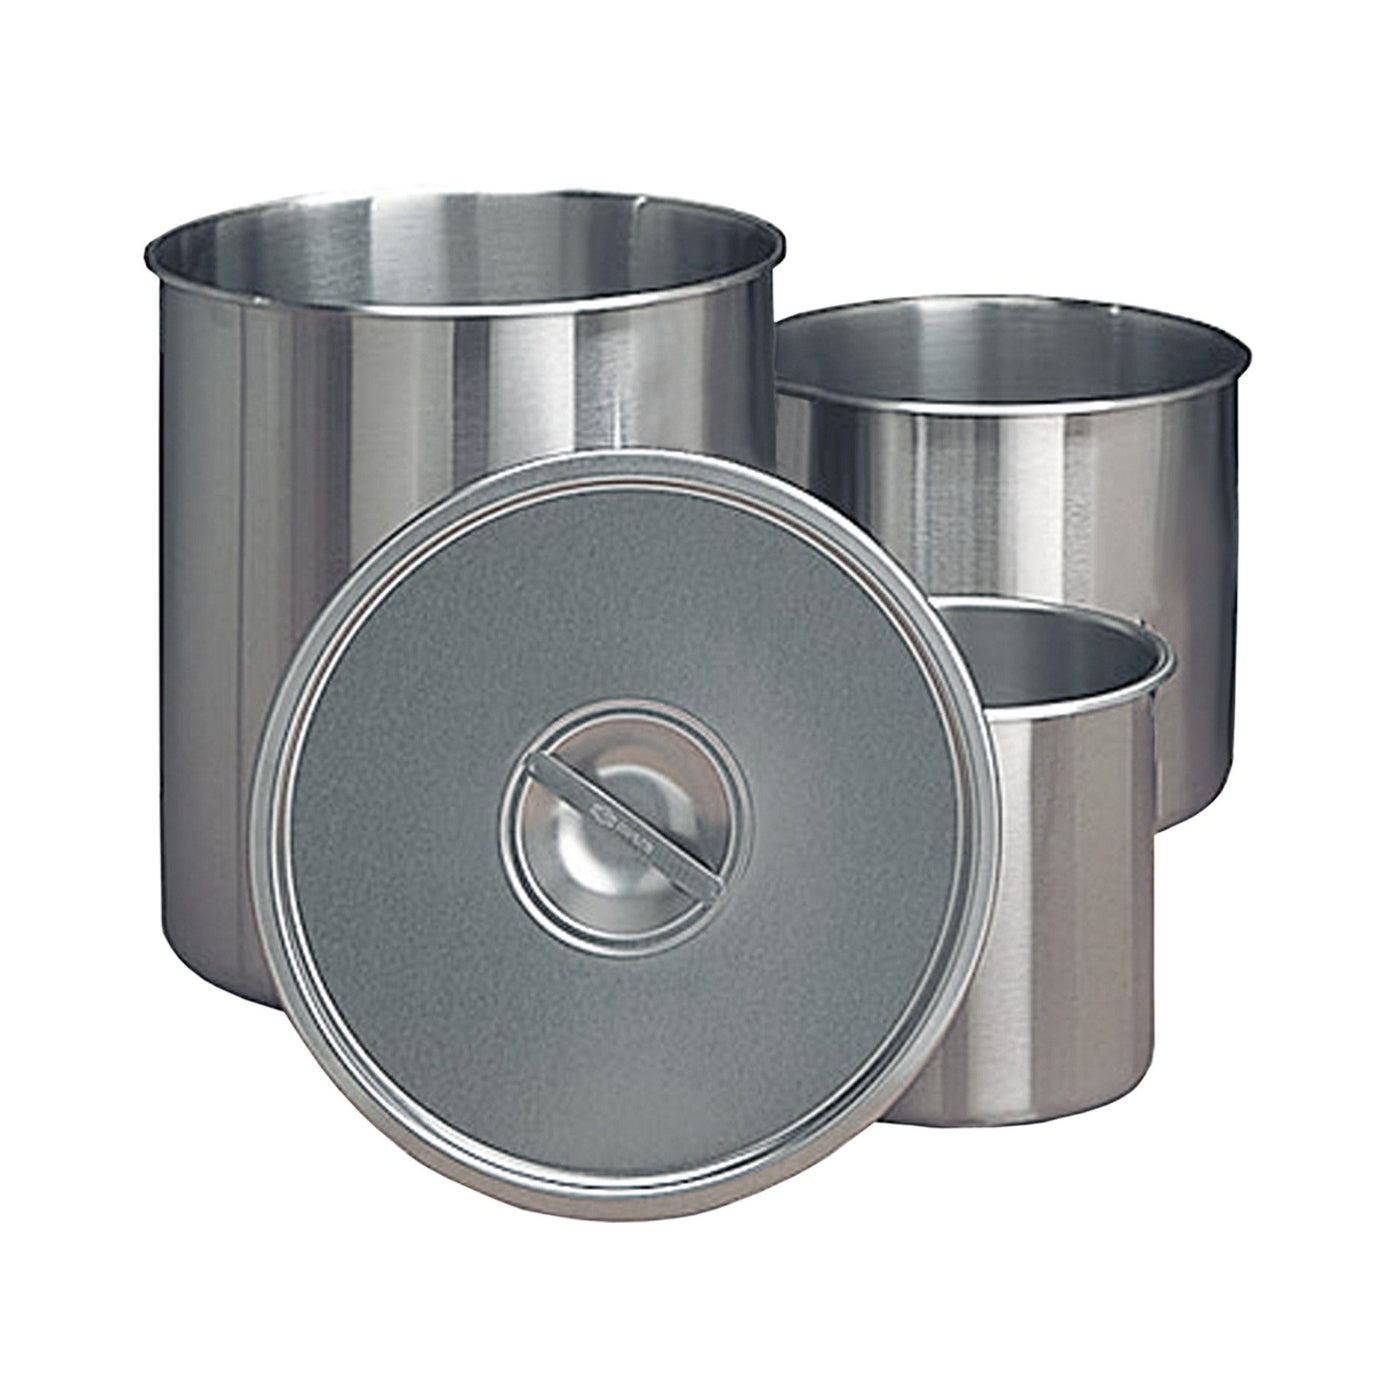 Storage Containers-Laboratory Accessory-Mortech Manufacturing Company Inc. Quality Stainless Steel Autopsy, Morgue, Funeral Home, Necropsy, Veterinary / Anatomy, Dissection Equipment and Accessories